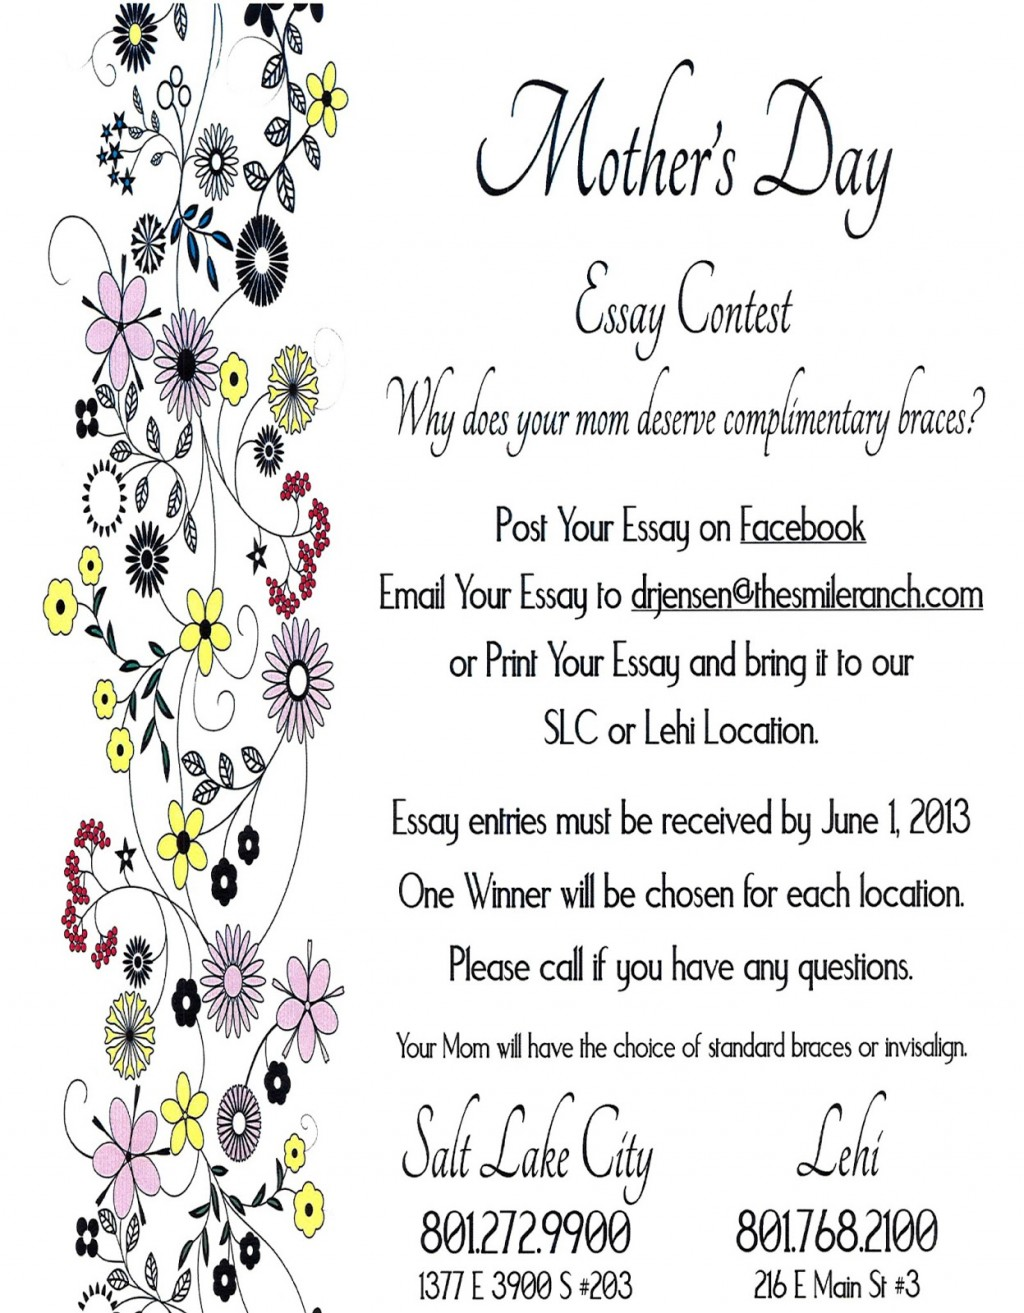 001 Mothersdaycontest Essay Example Mothers Top Day In Kannada Contest Mother's Telugu Large